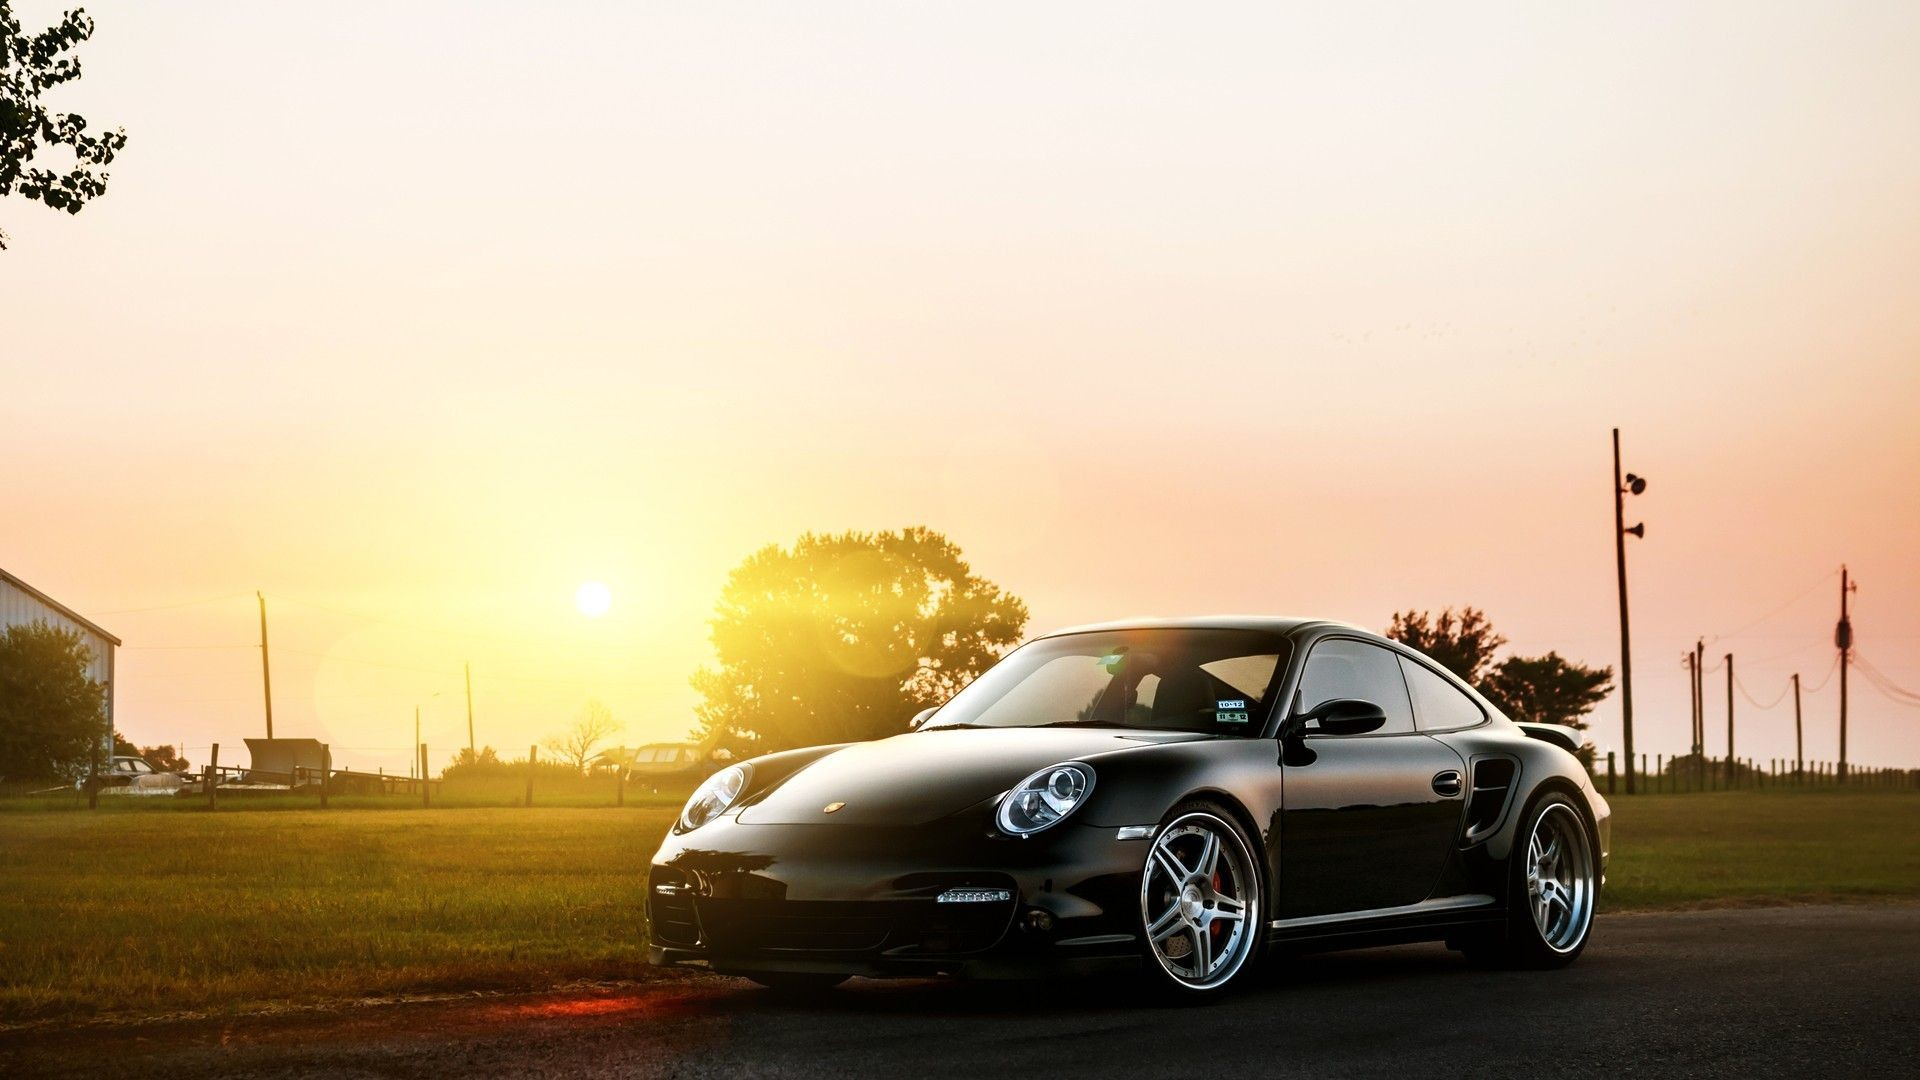 1920x1080 Classic Porsche 911 Wallpaper High Quality Resolution #gfc